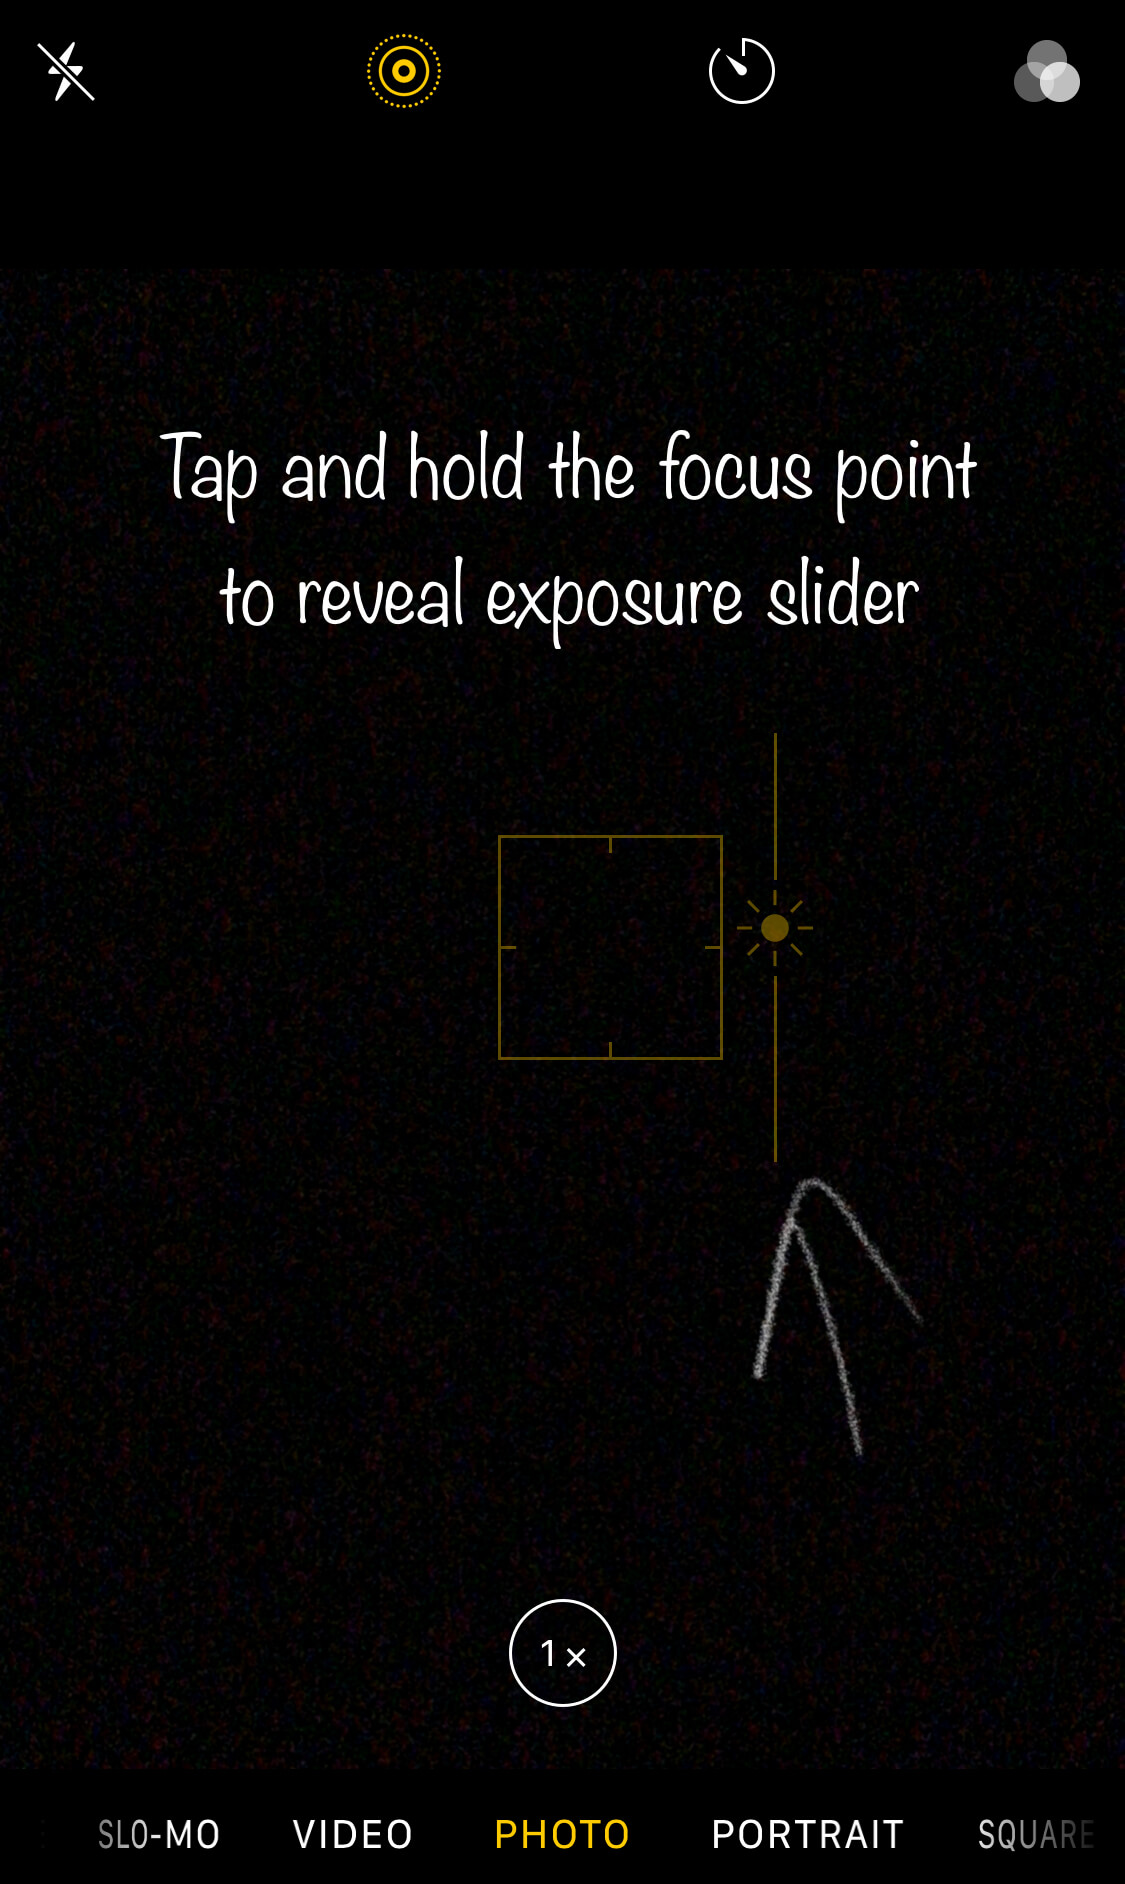 Exposure slider